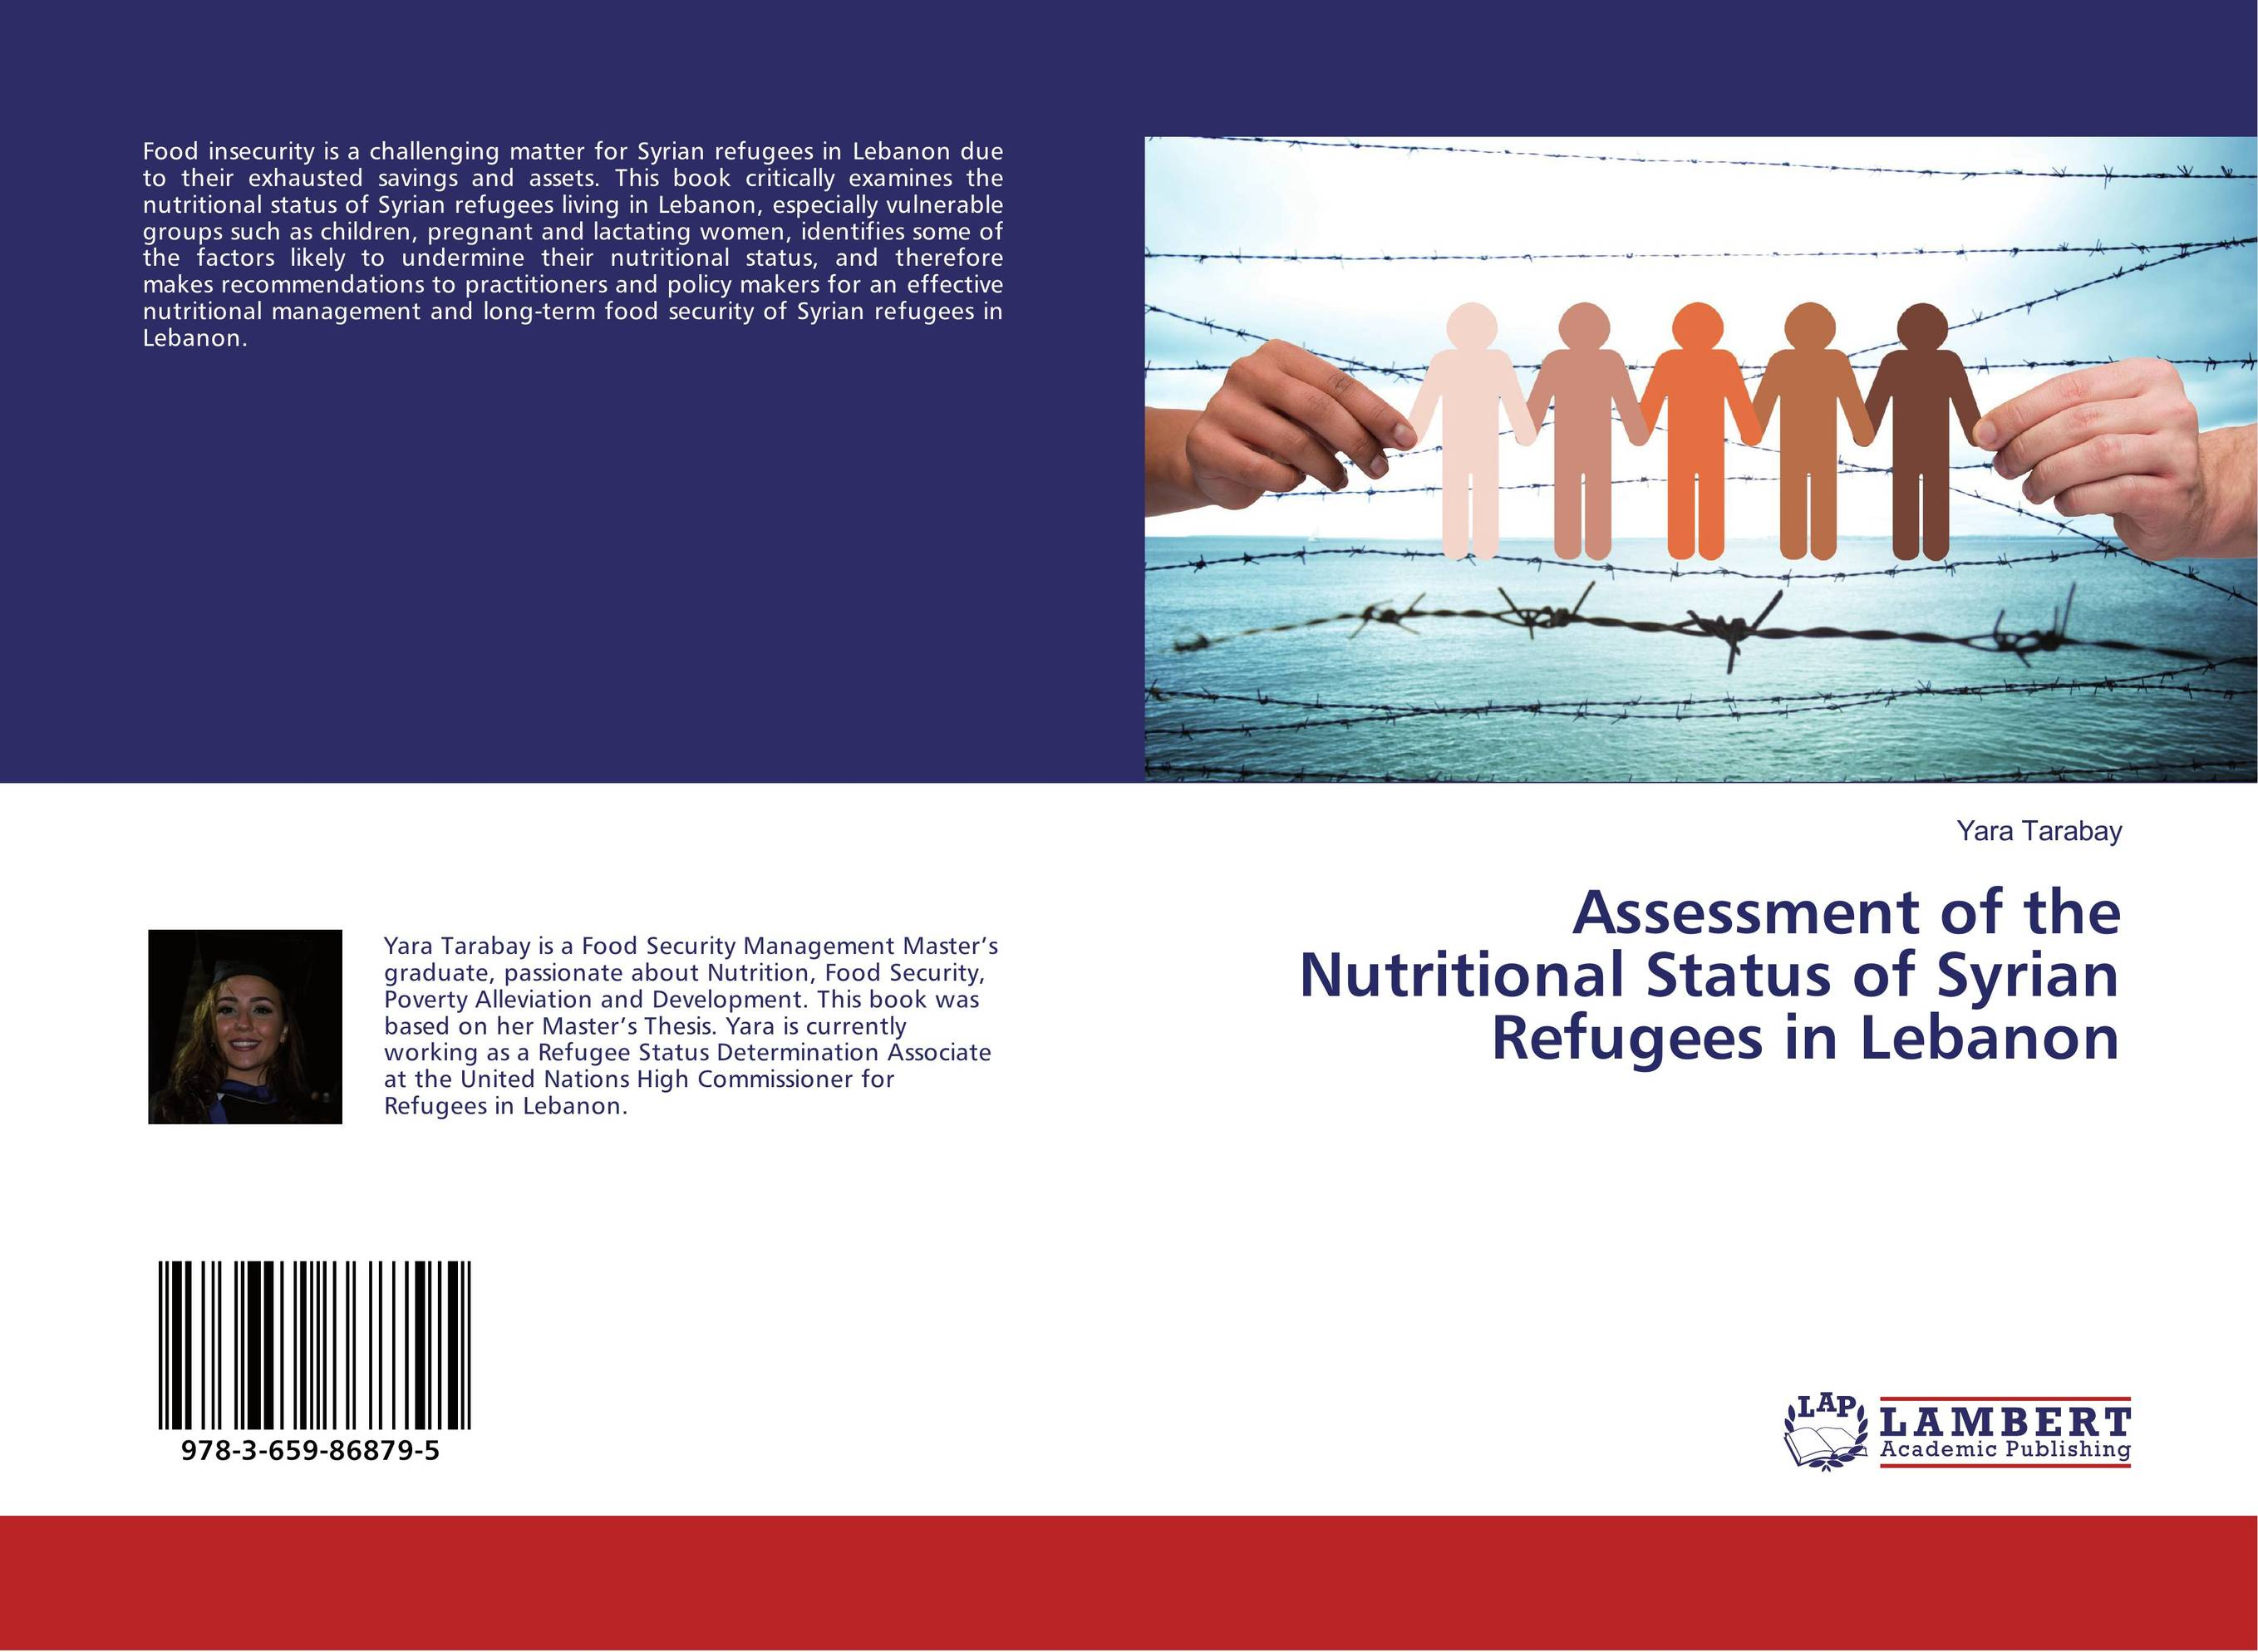 Assessment of the Nutritional Status of Syrian Refugees in Lebanon